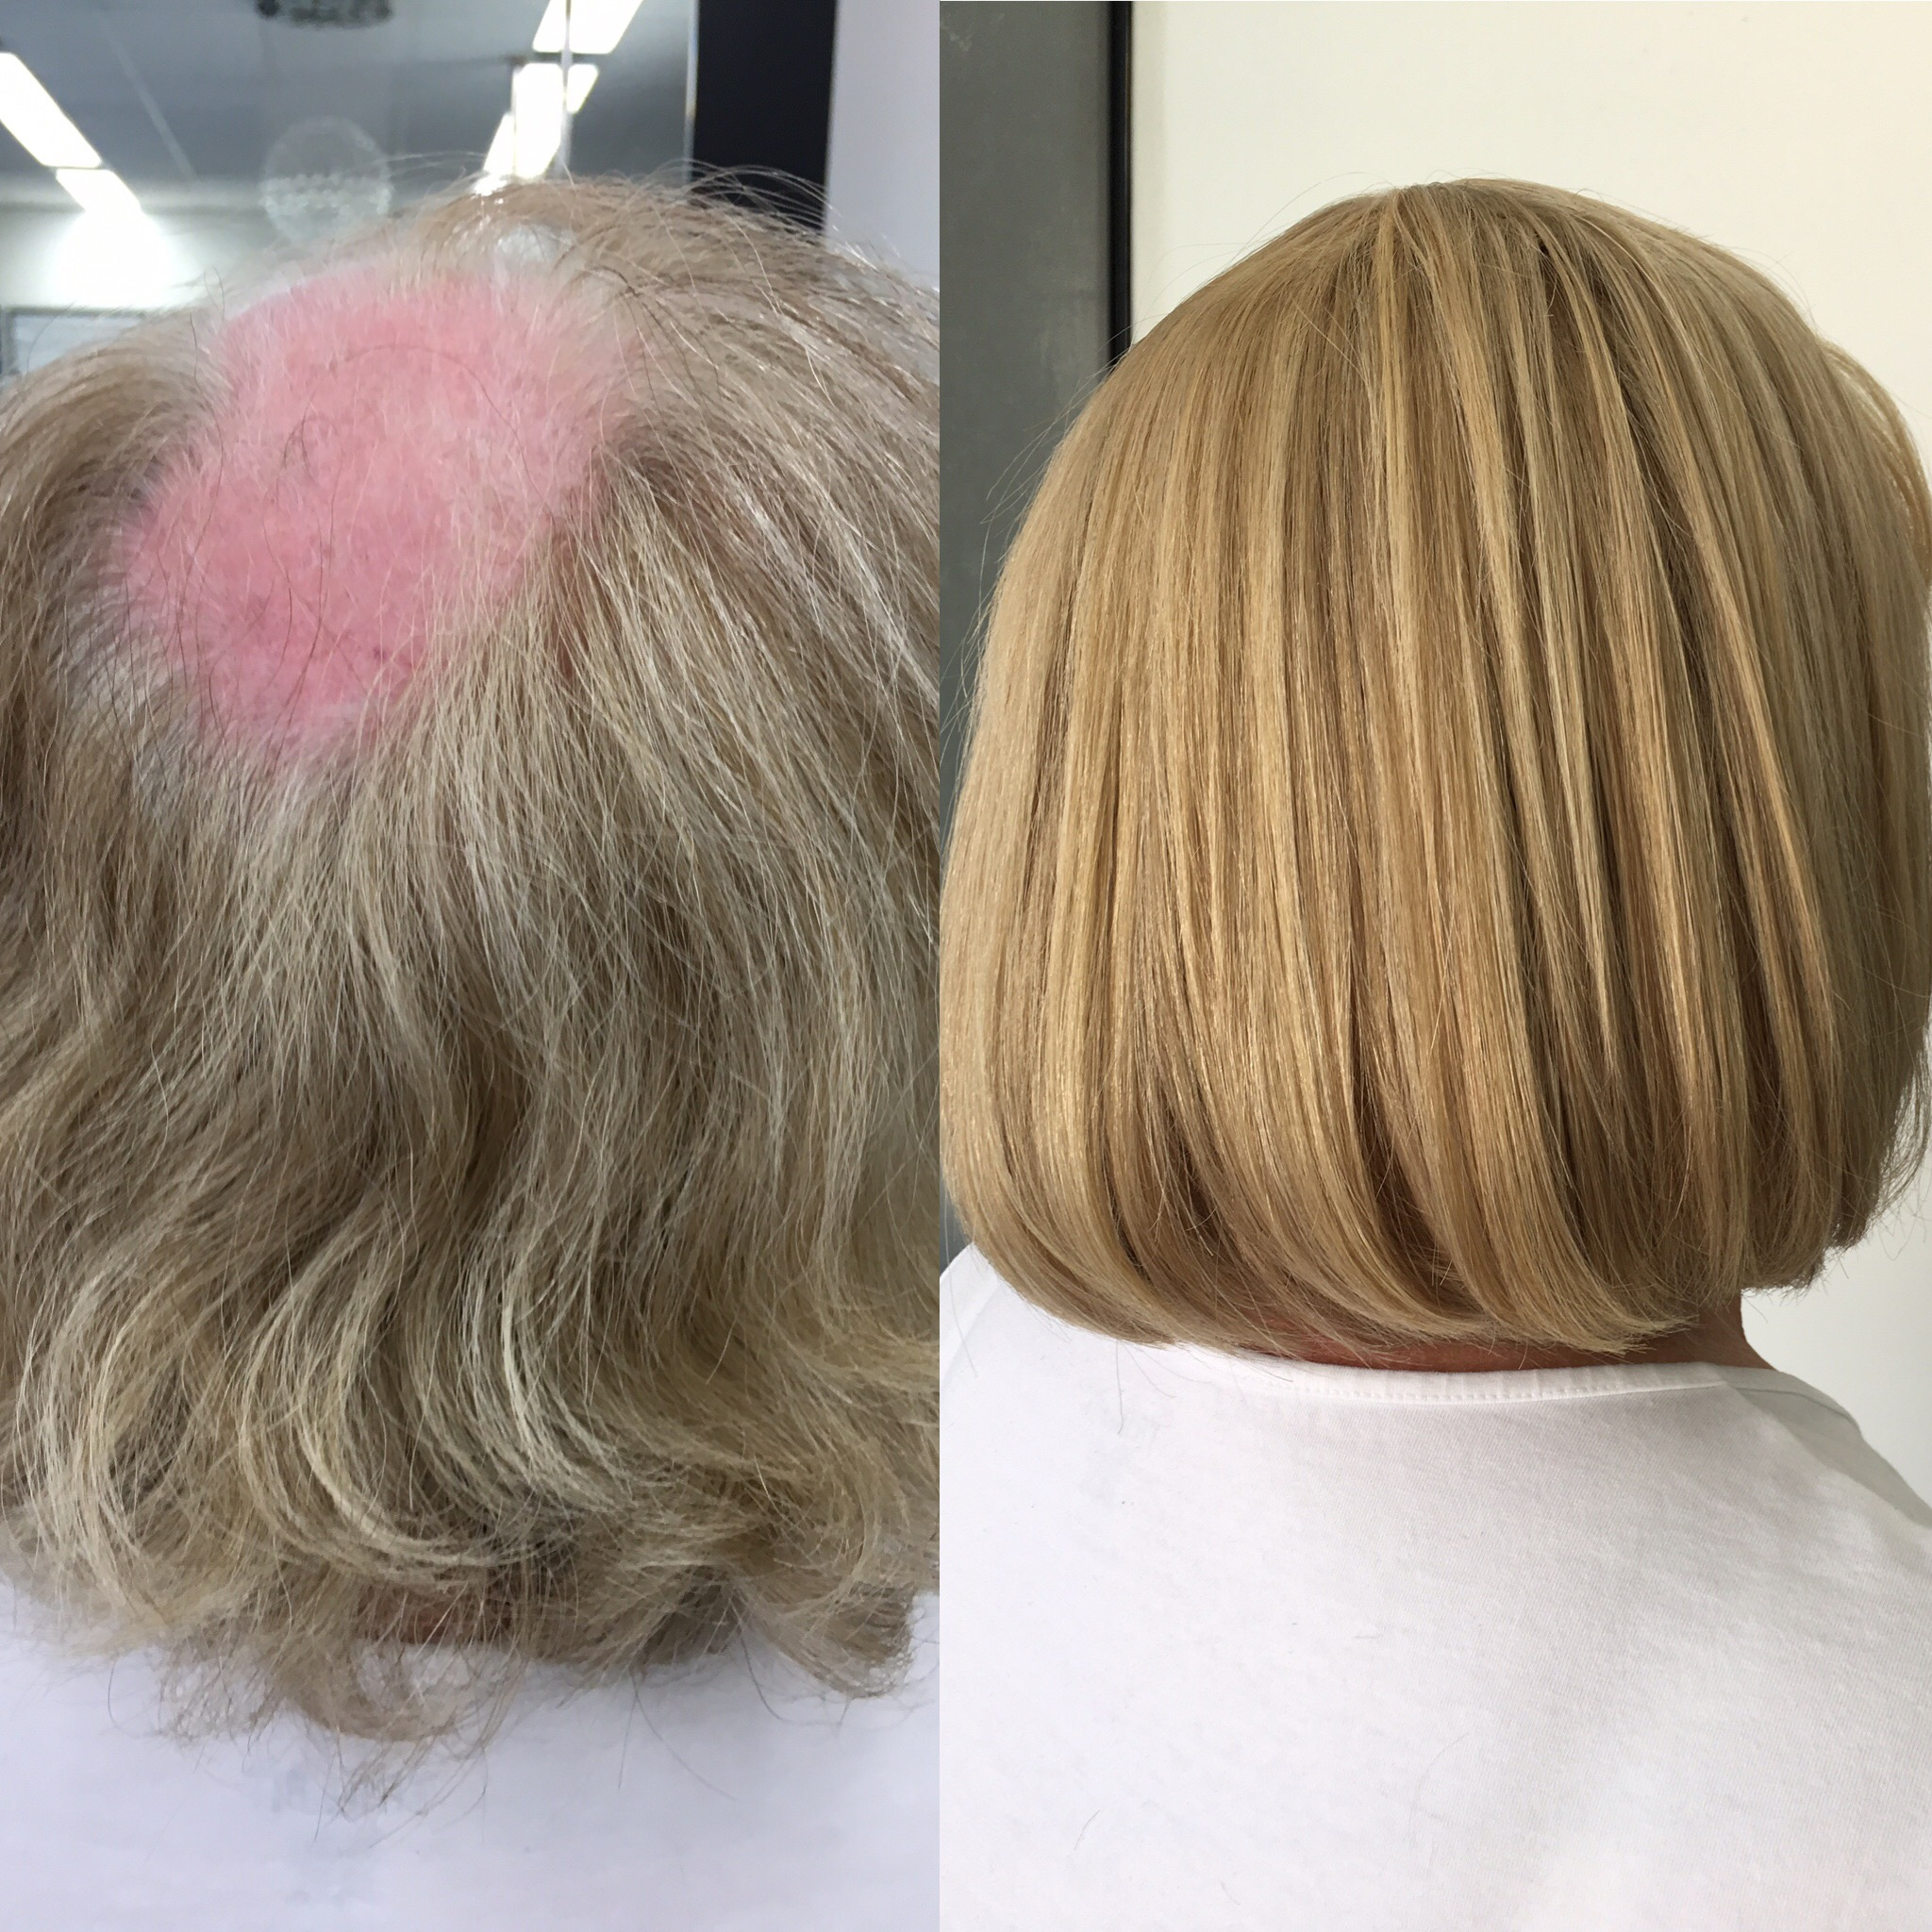 HAIR LOSS SOLUTION BEFORE AND AFTER. Custom piece installed made by us!